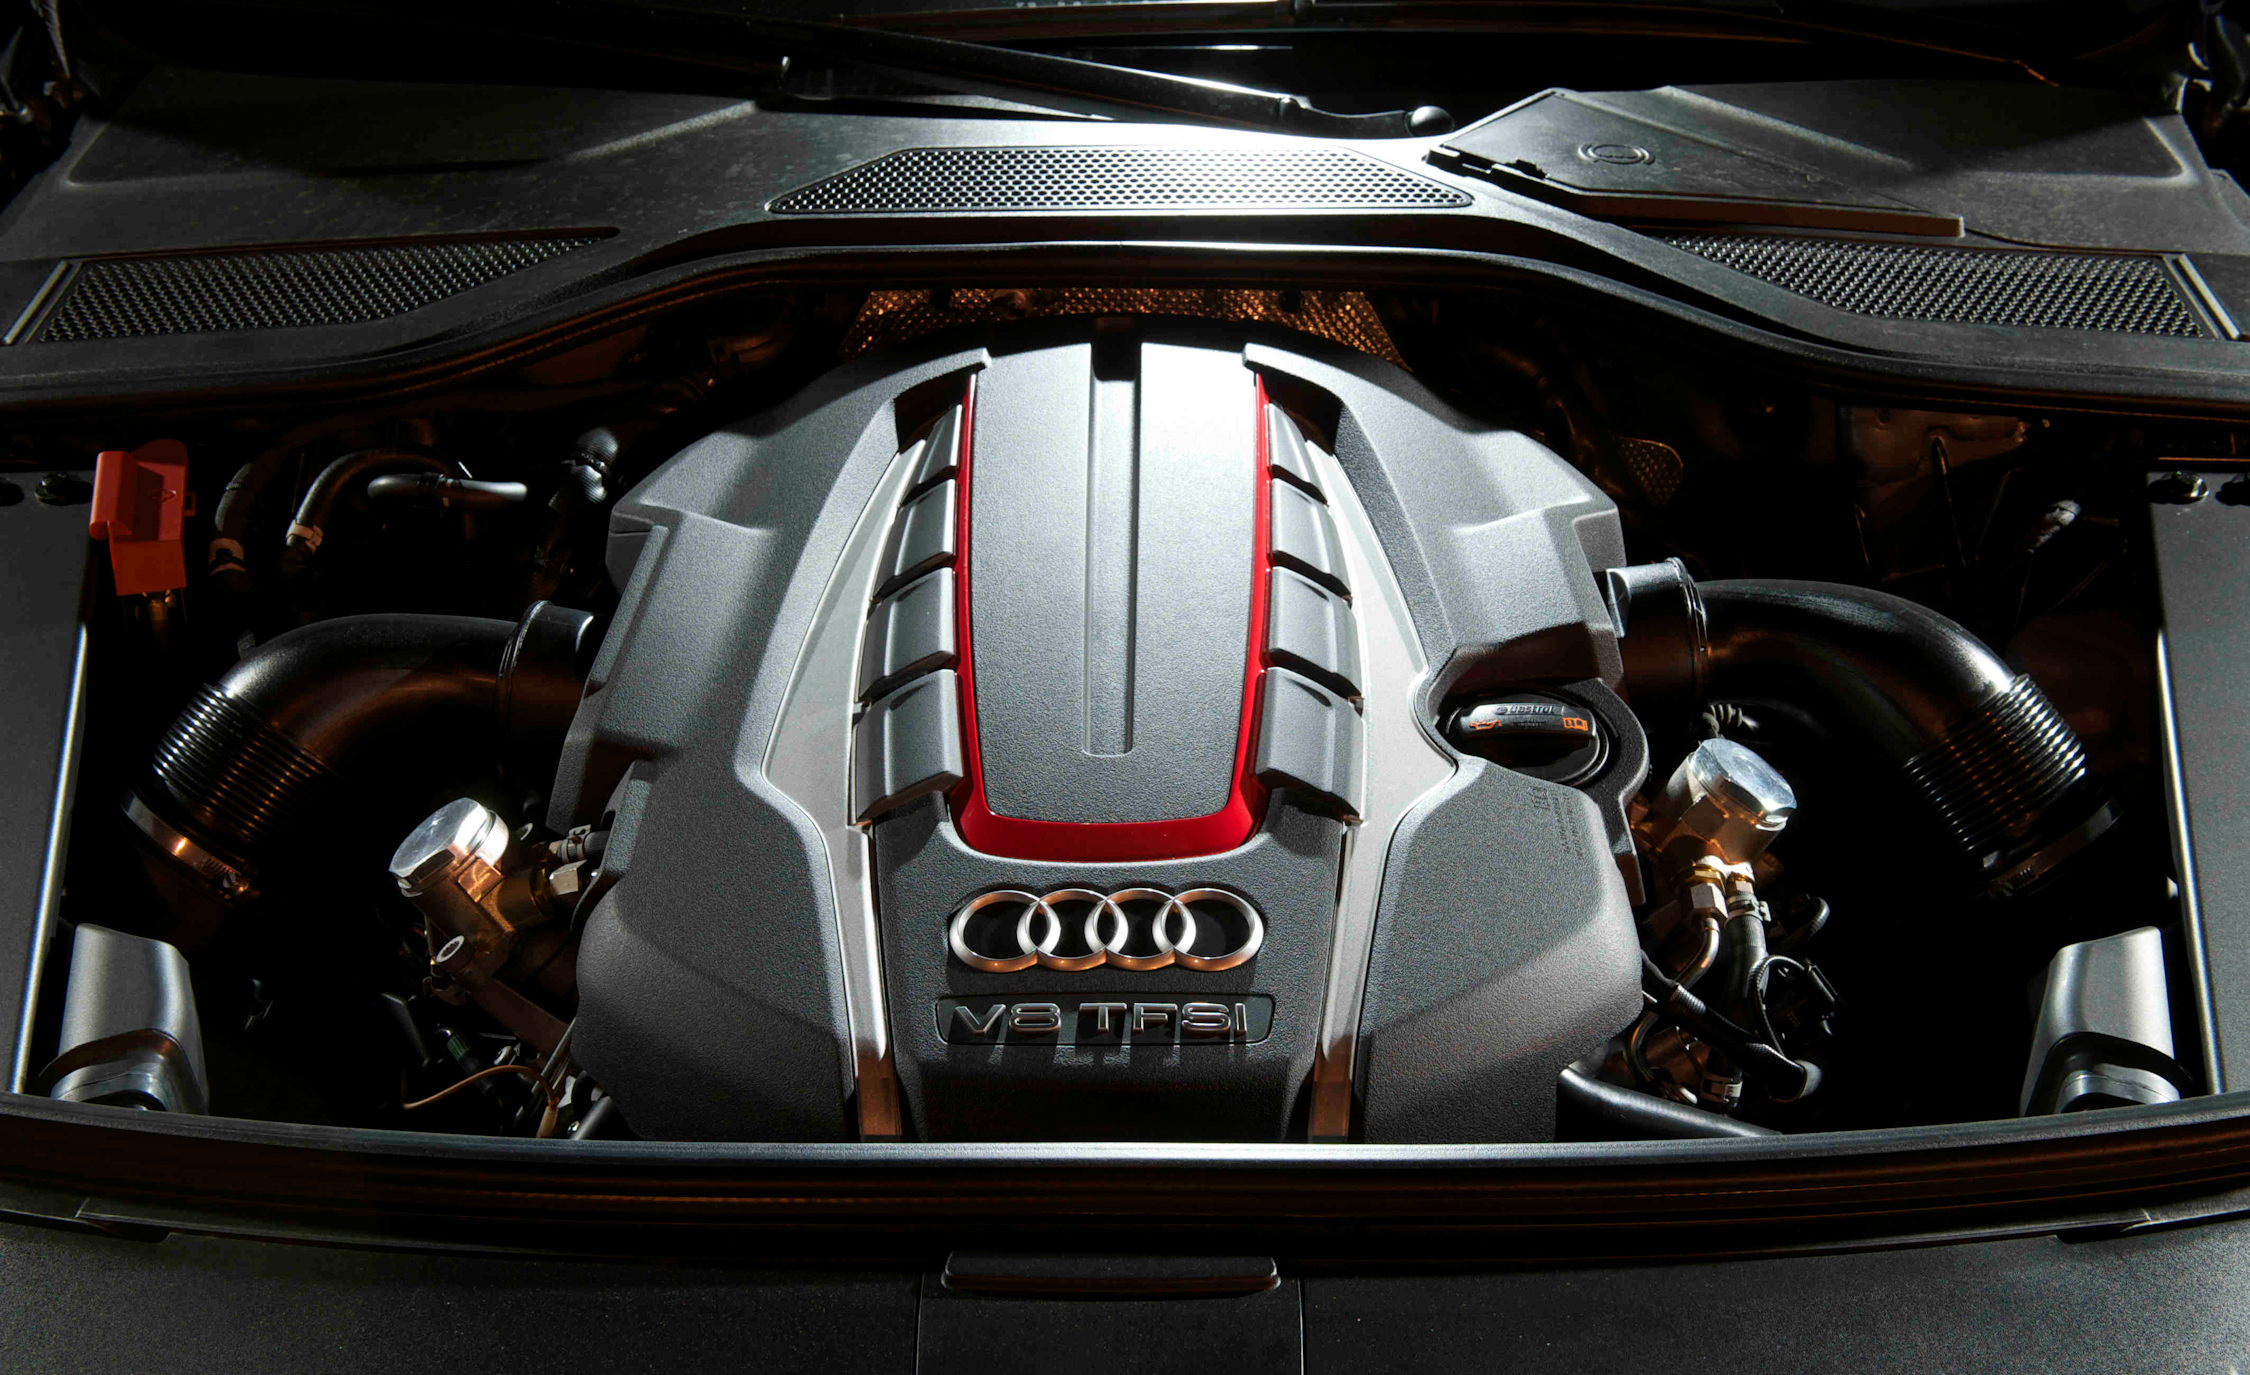 2013 Audi S8 View Engine (Photo 2 of 25)